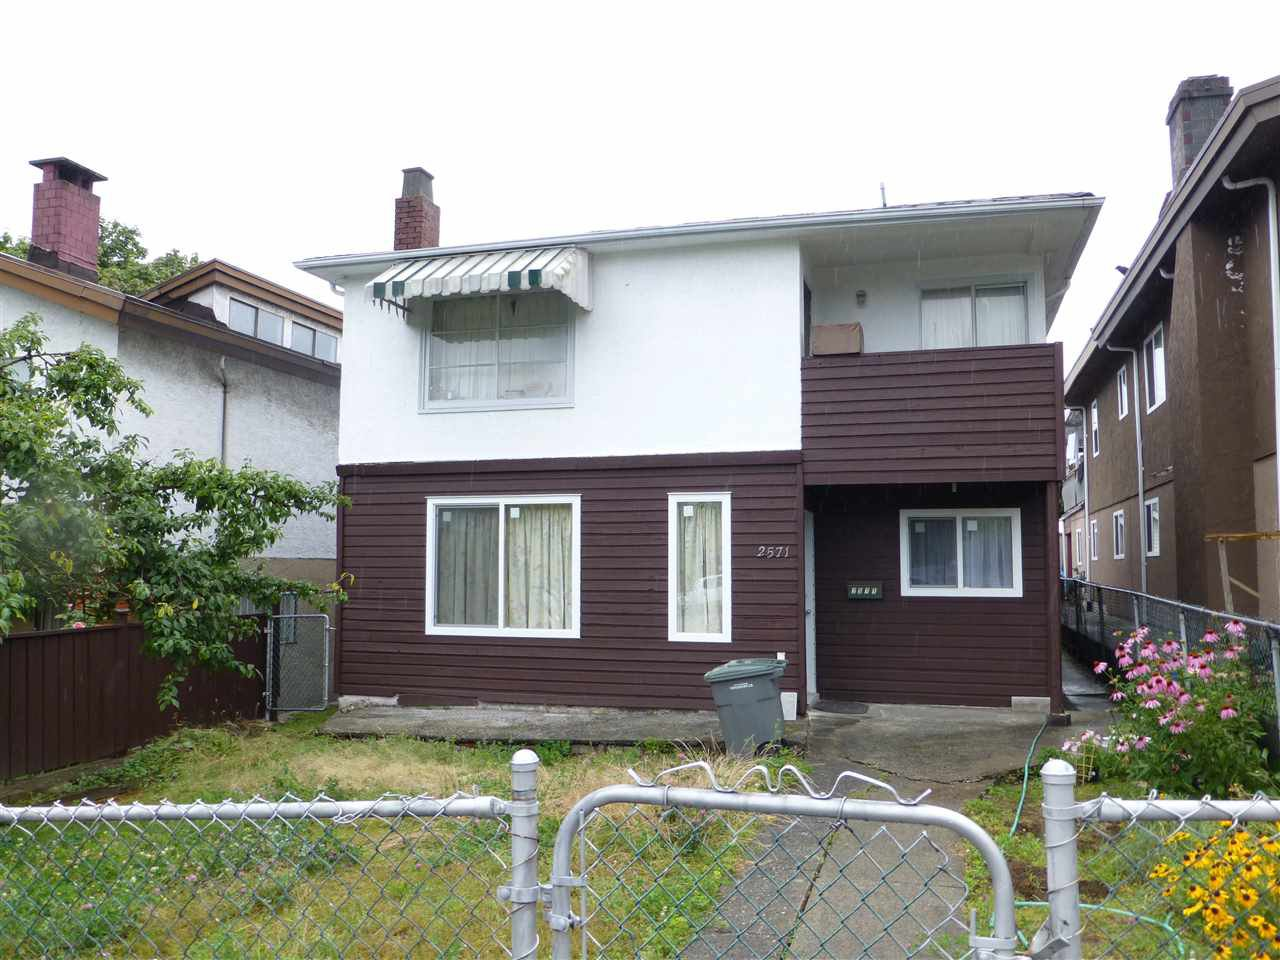 Main Photo: 2571 RENFREW Street in Vancouver: Renfrew VE House for sale (Vancouver East)  : MLS®# R2085901